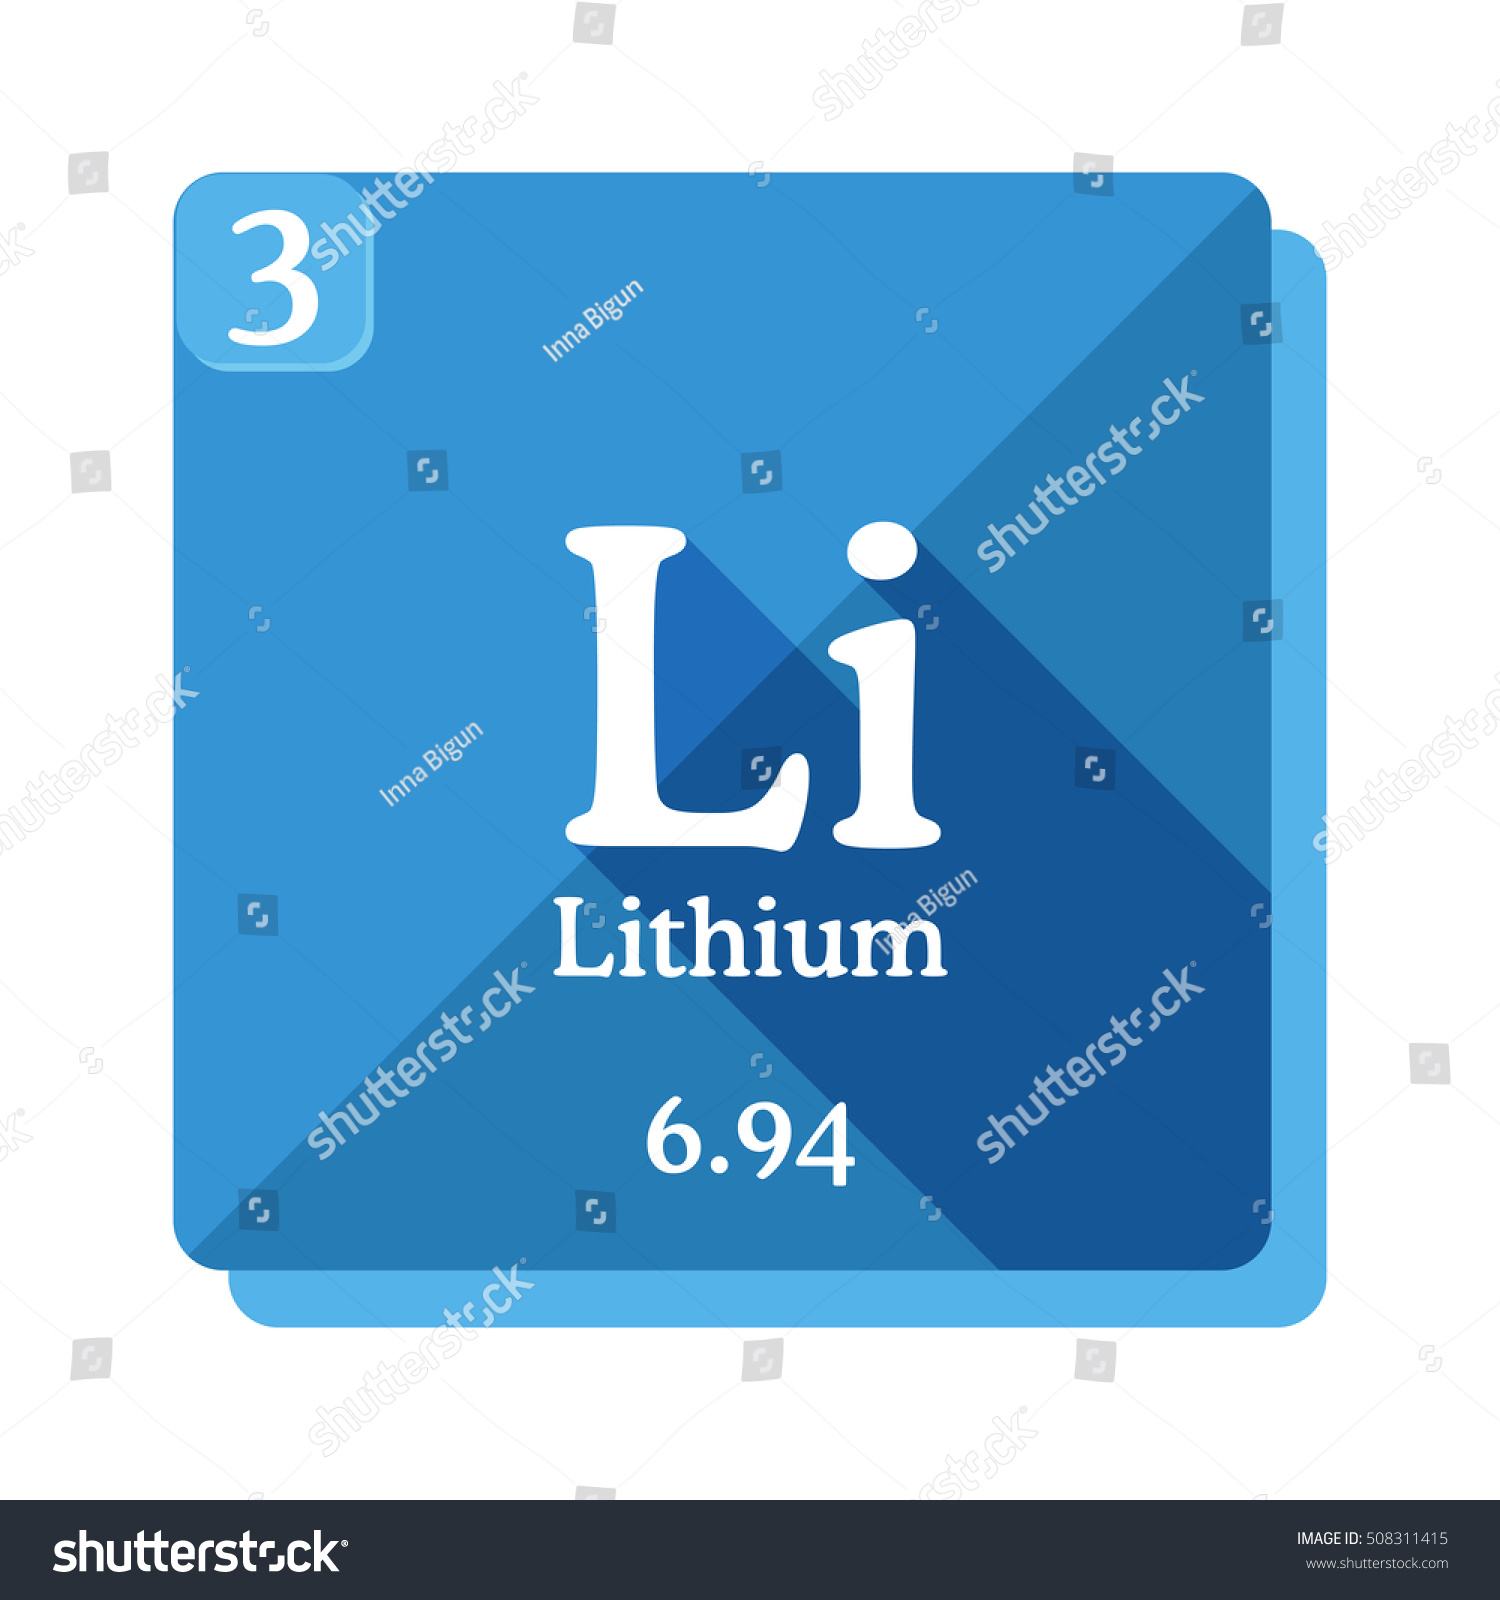 Periodic table of elements lithium image collections periodic periodic table of elements lithium choice image periodic table lithium chemical element periodic table elements stock gamestrikefo Image collections